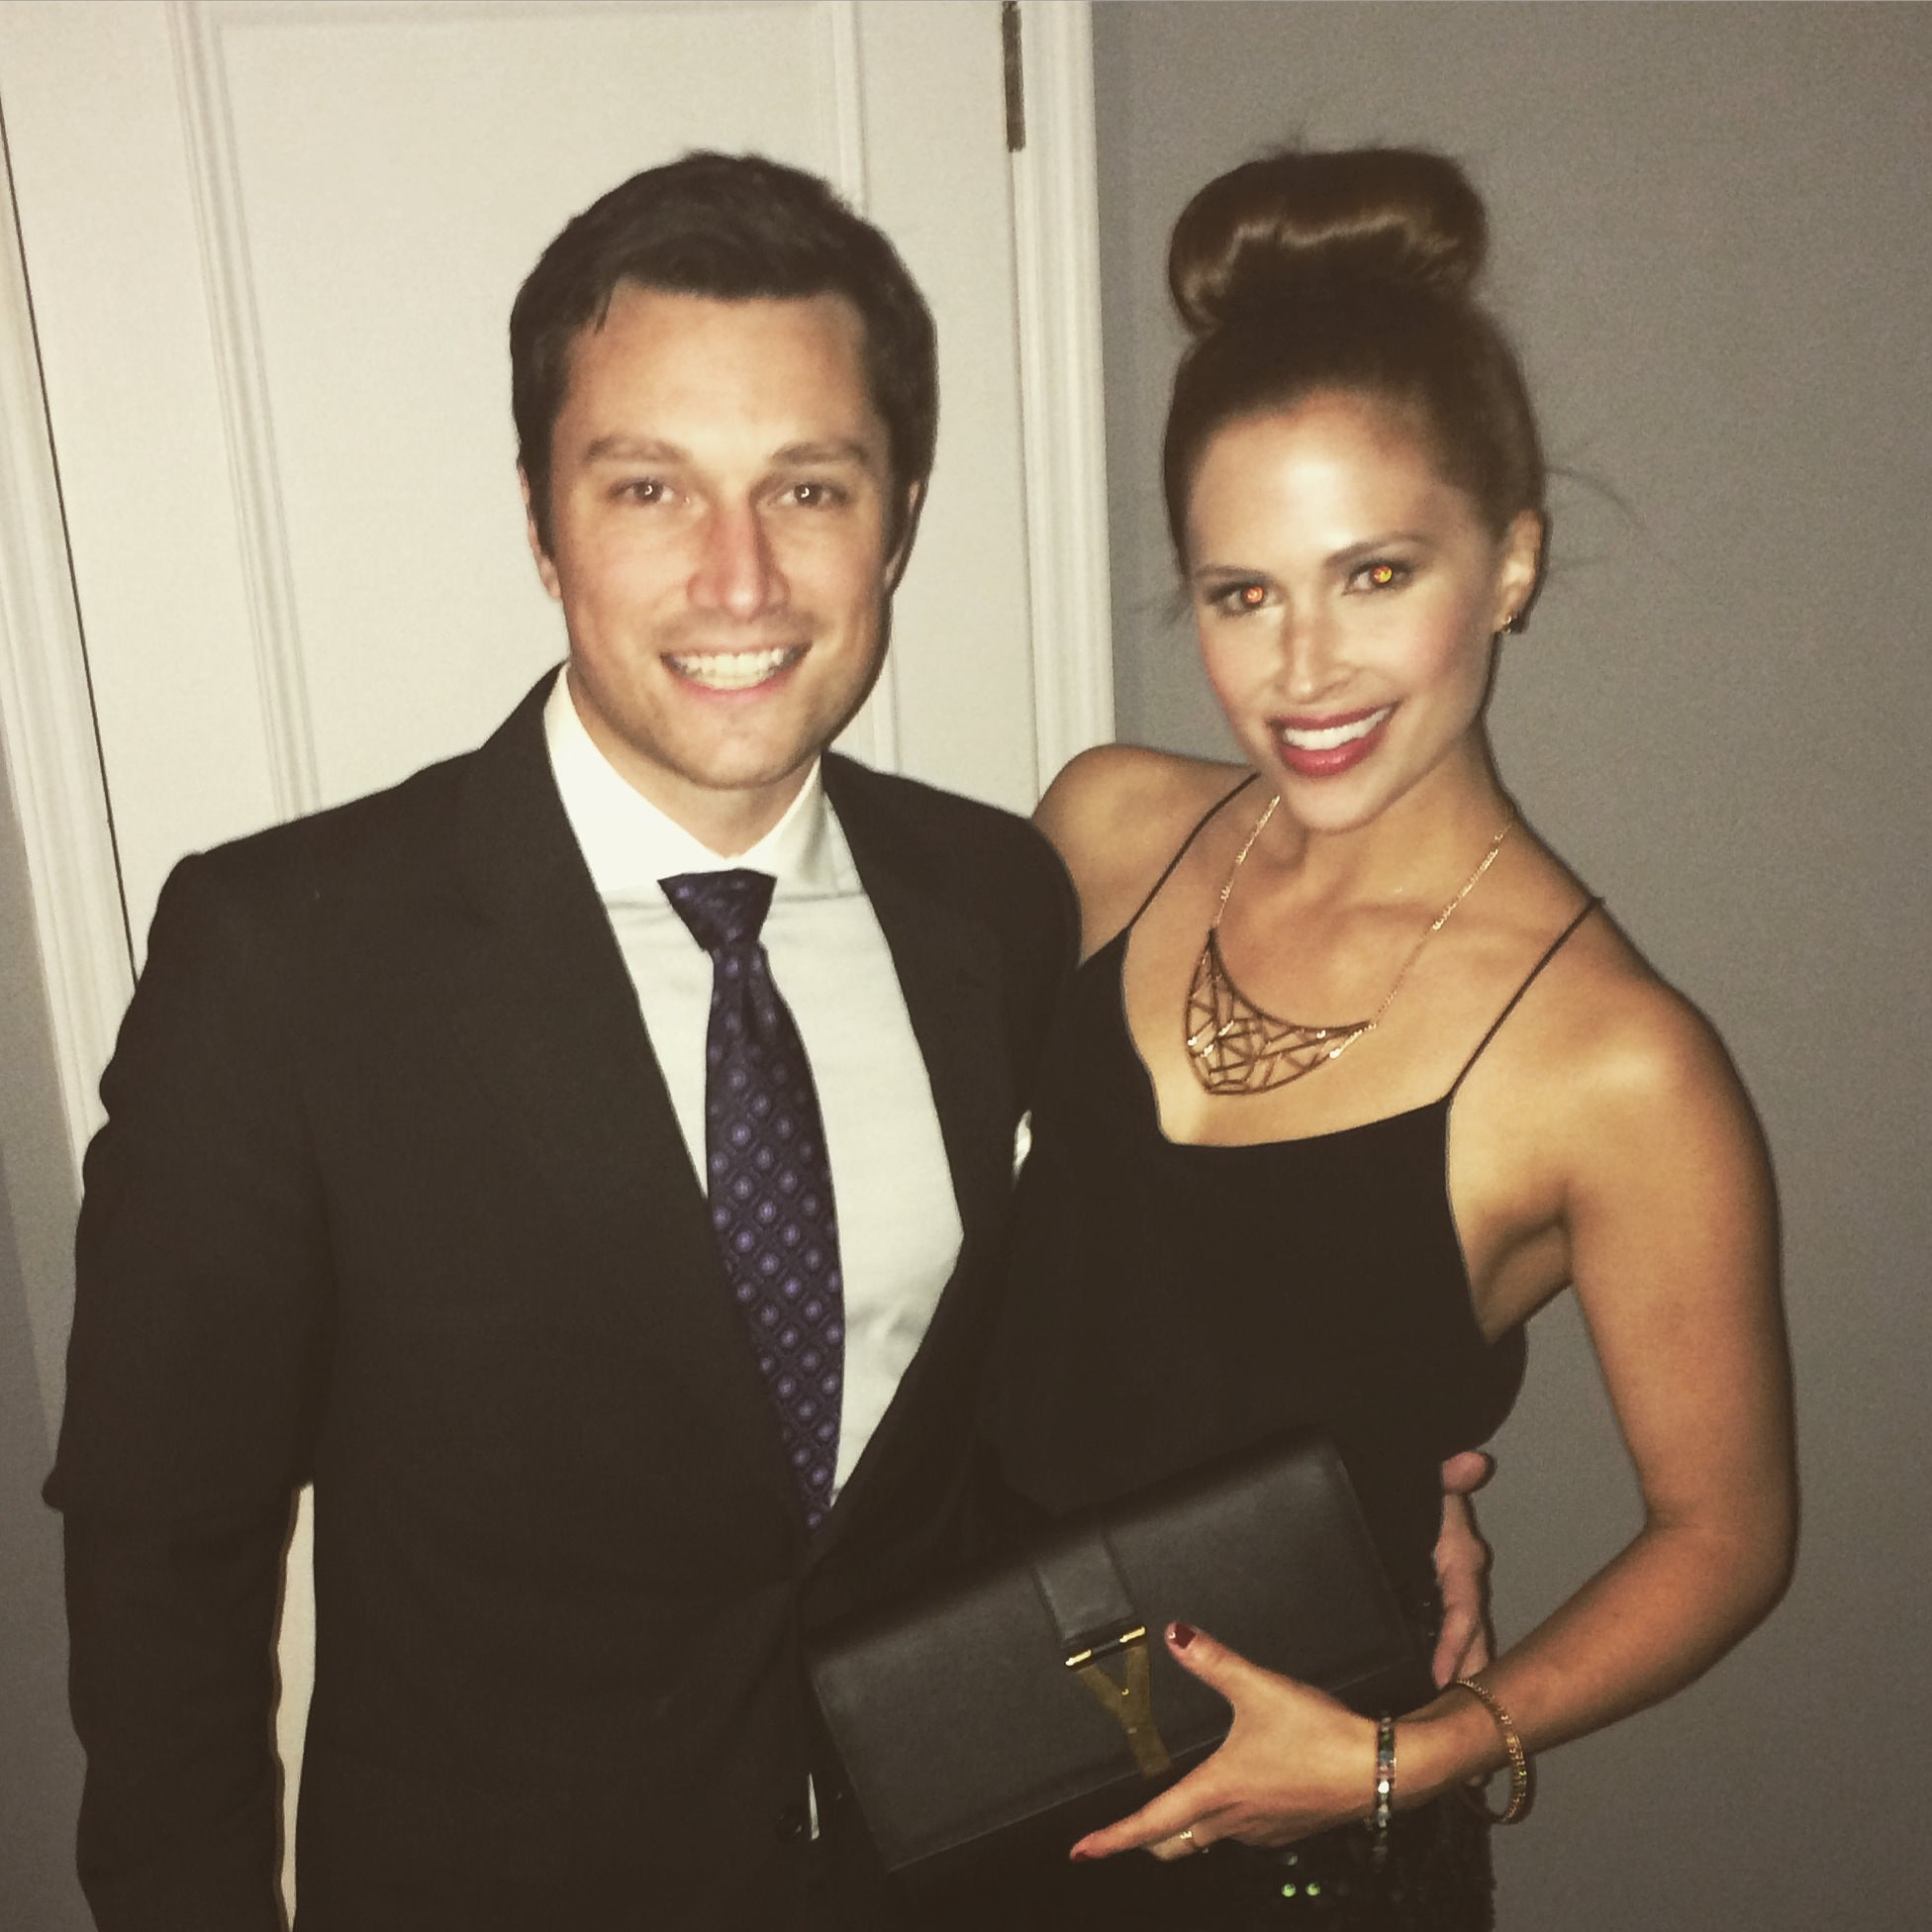 Brooke Ruder, Andrew Neiman, new years, cute couple, dressed up, night out, NYE, 2015, resolutions, couple,